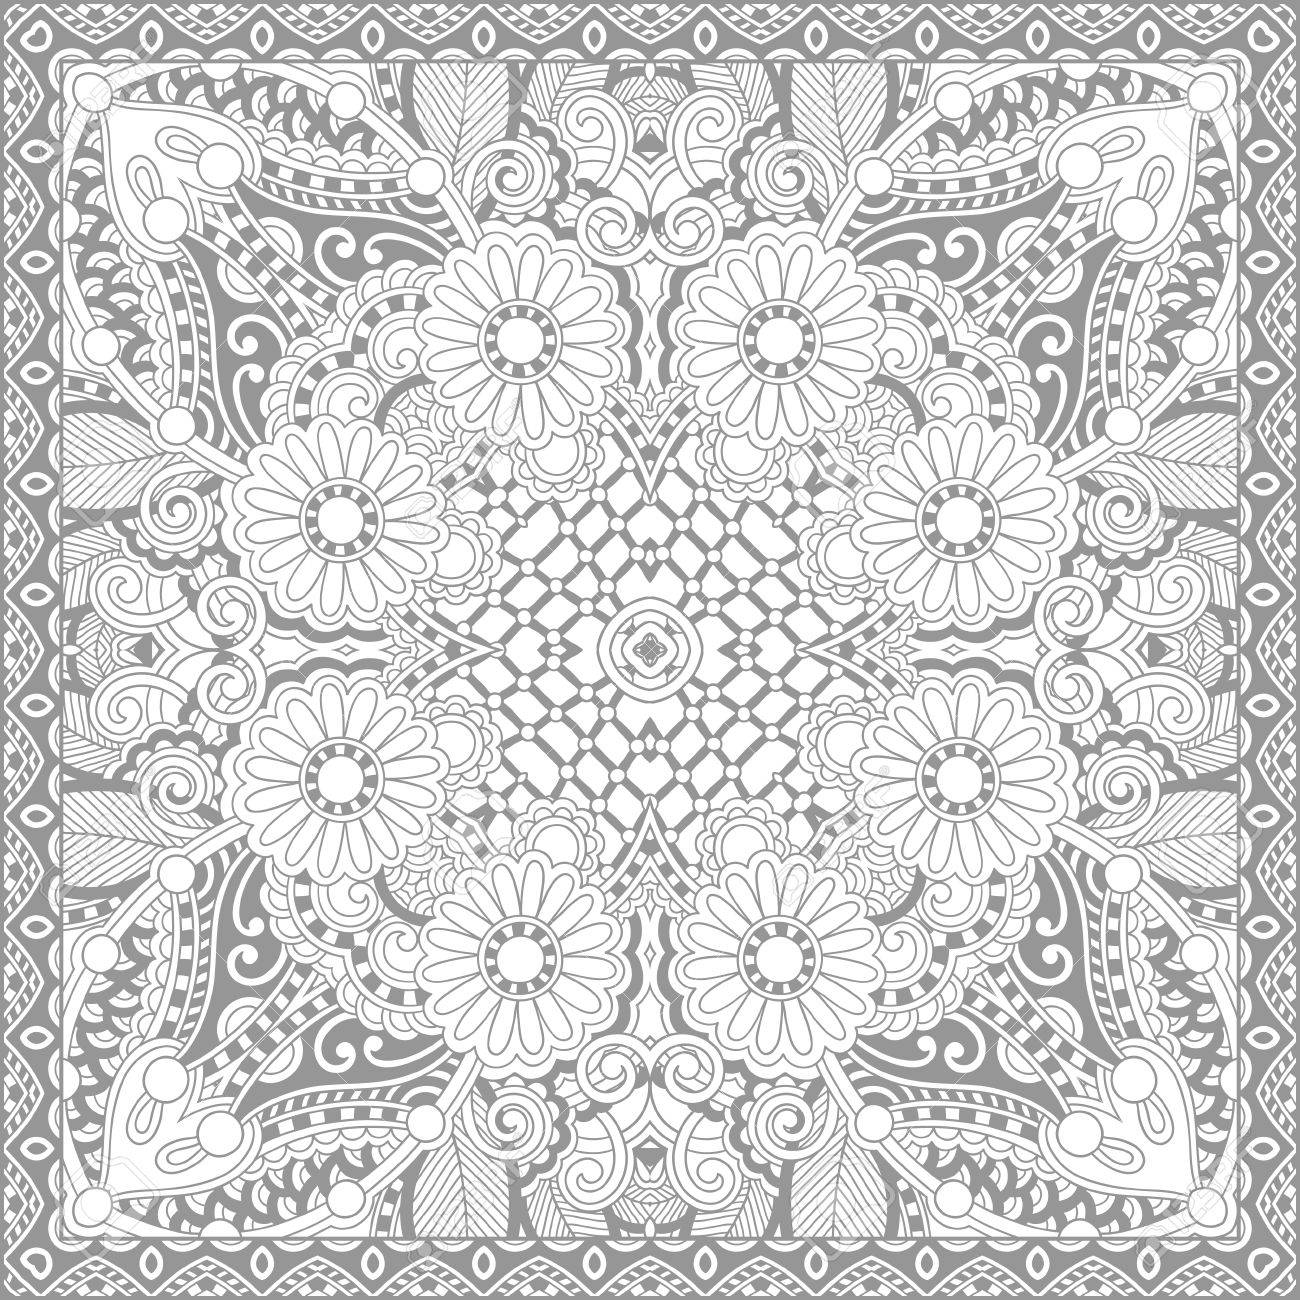 Unique Coloring Book Square Page For Adults Floral Authentic